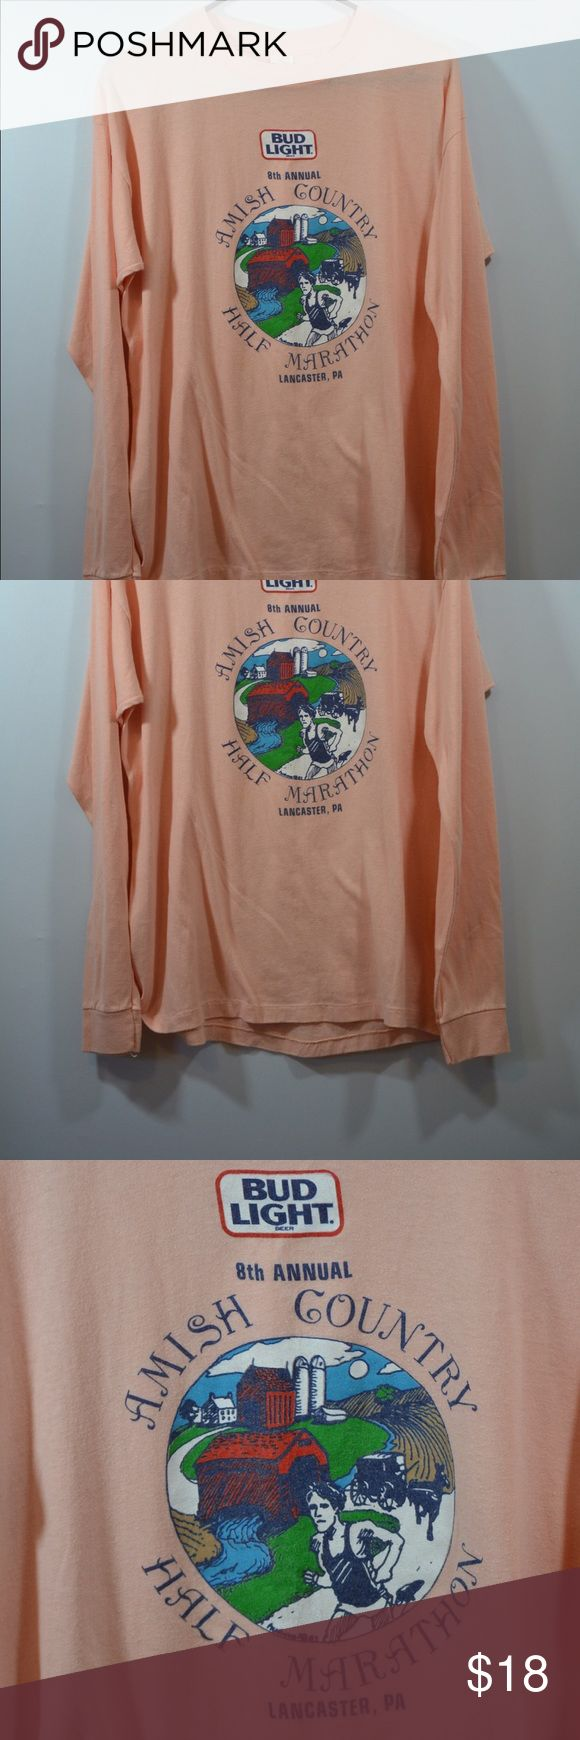 """Budlight 8th Annual Amish County Marathon T Shirt Budlight 8th Annual Amish County Marathon T Shirt Made In USA,peach color. Size XL with measurements in inches. Length:26.5"""",Chest:21.5"""",Sleeve:23"""" Tops Tees - Long Sleeve"""